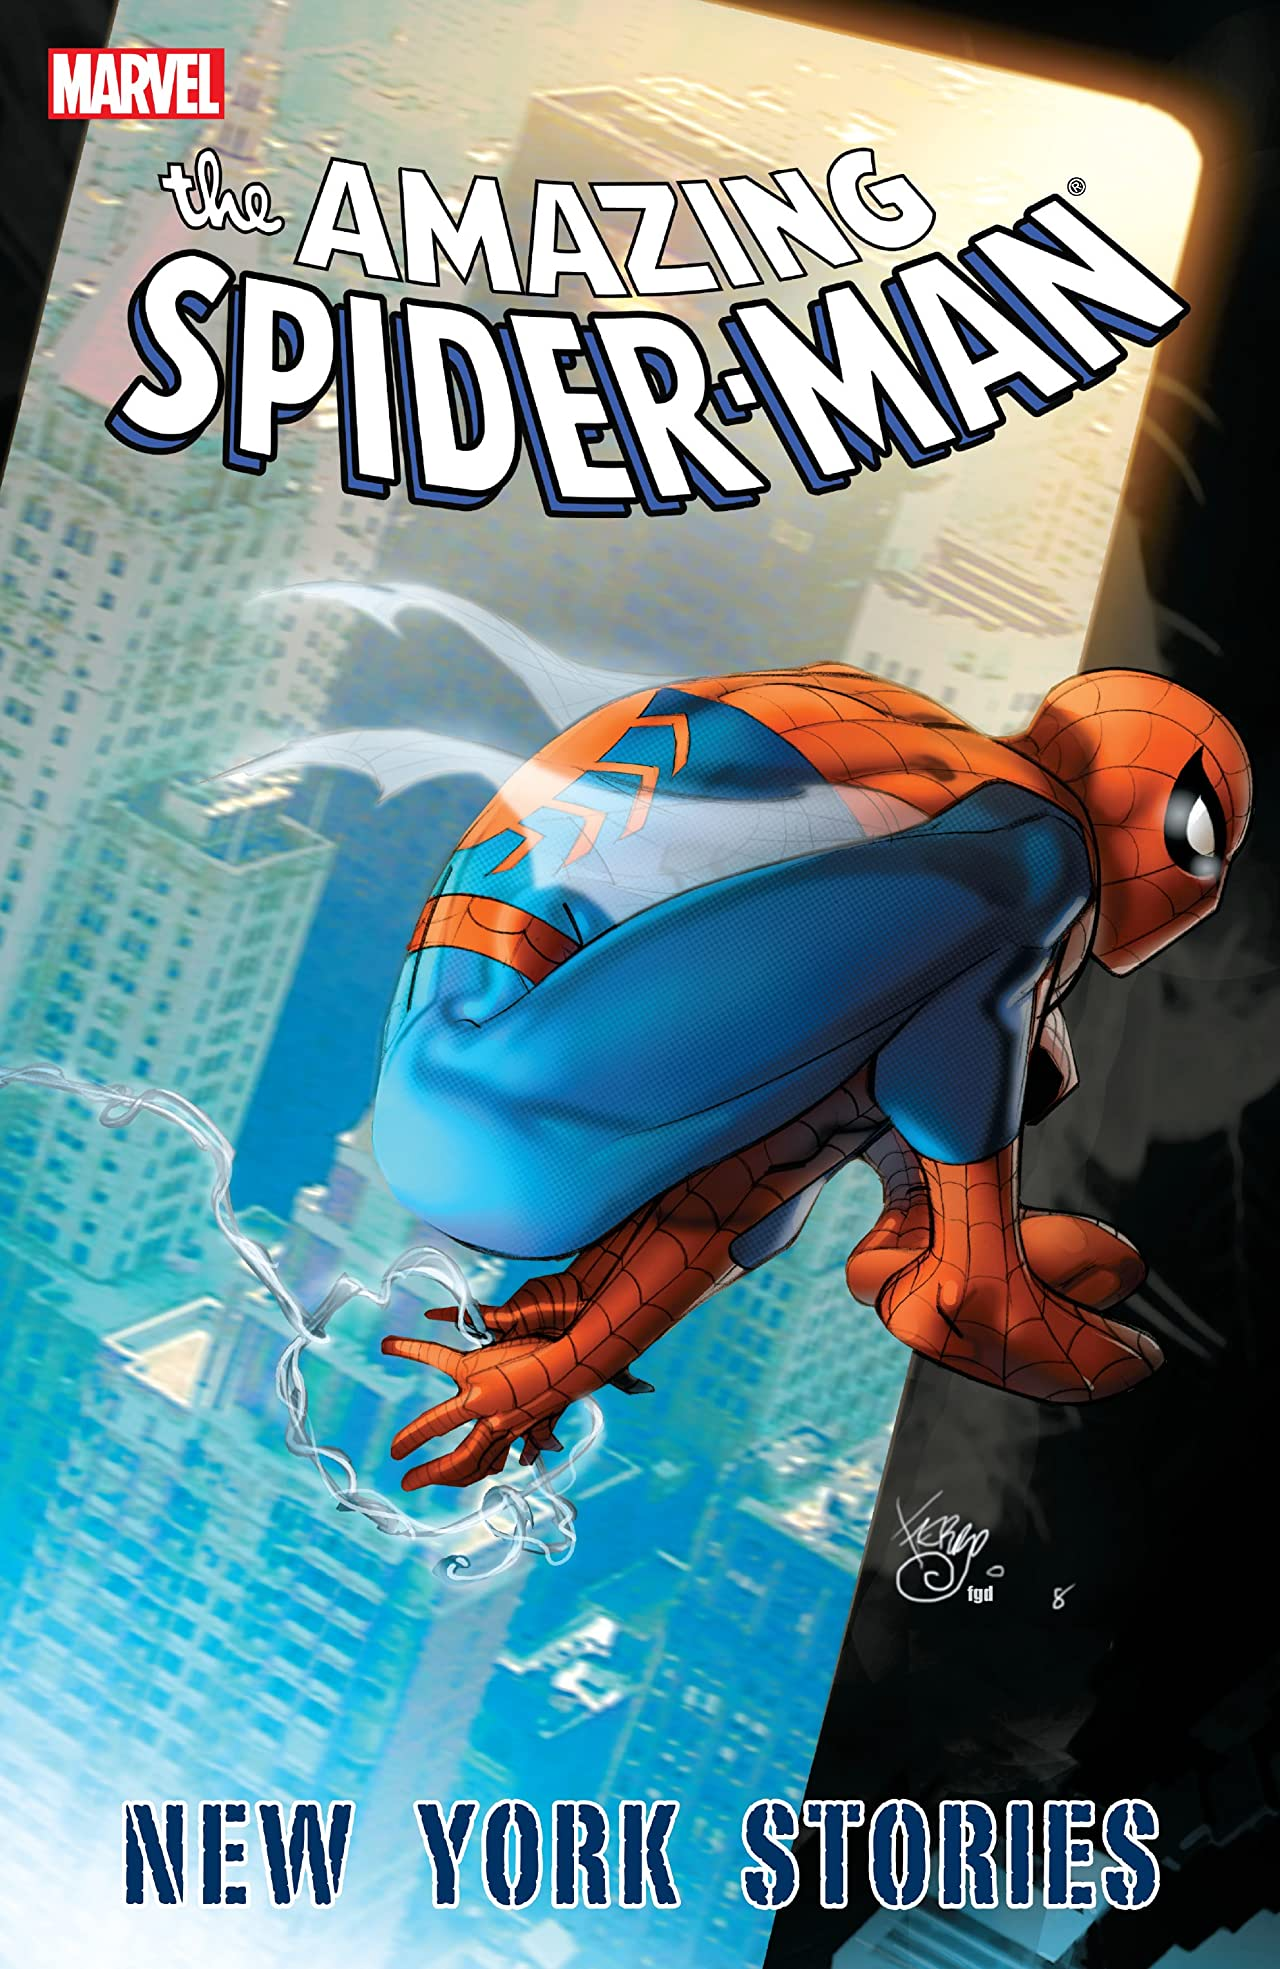 Spider-Man: New York Stories